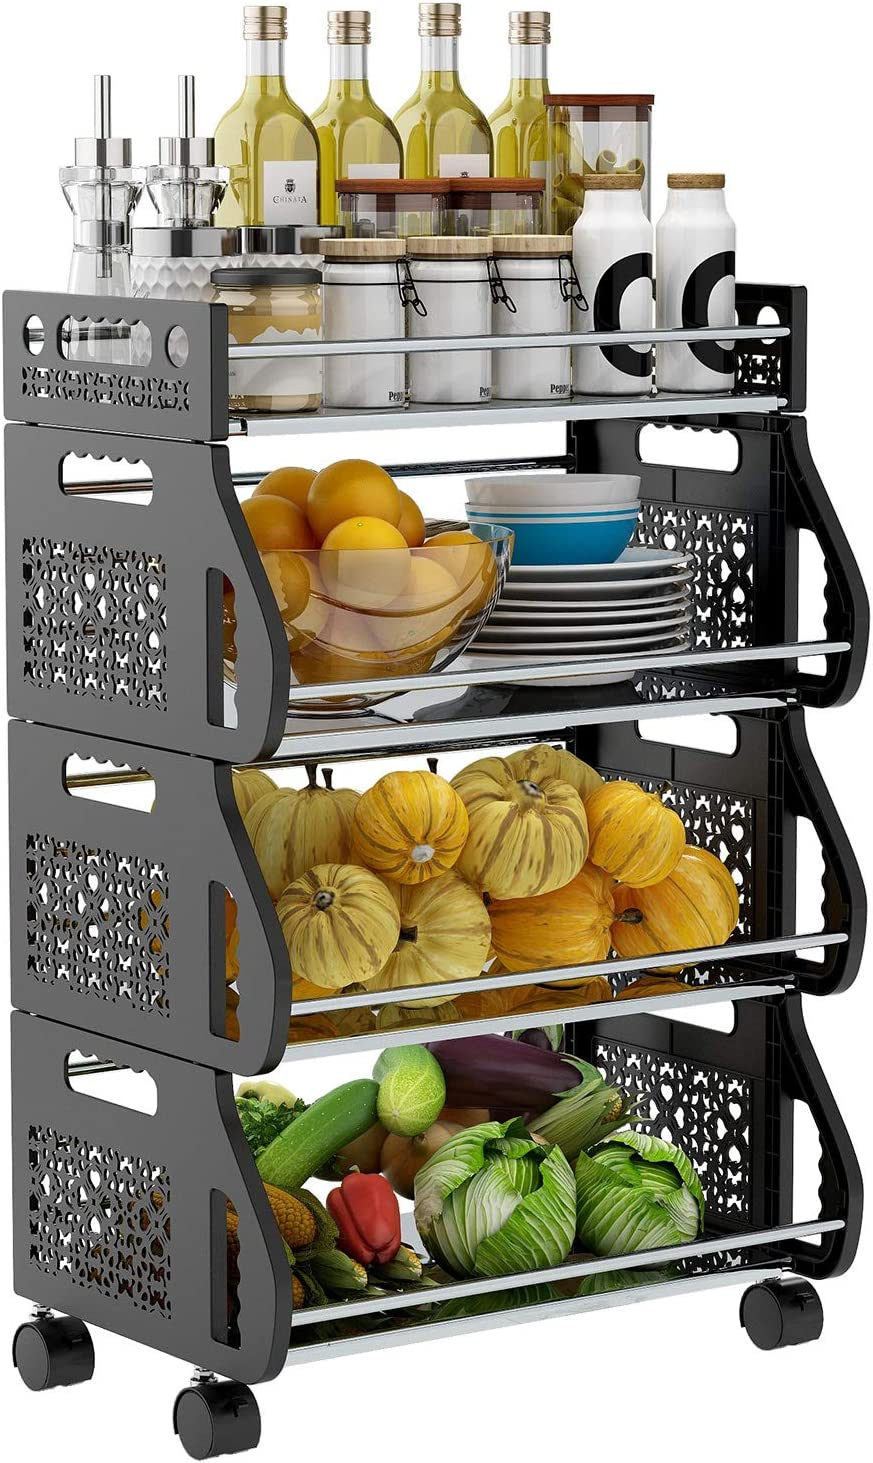 Fruit Storage Basket,DUSASA 4 Tier Rolling Stackable Vegetable Fruit Basket Utility Cart Rack,Metal Storage Organizer Bin for Kitchen, Pantry Closet, Bedroom, Bathroom,Garage (Black)